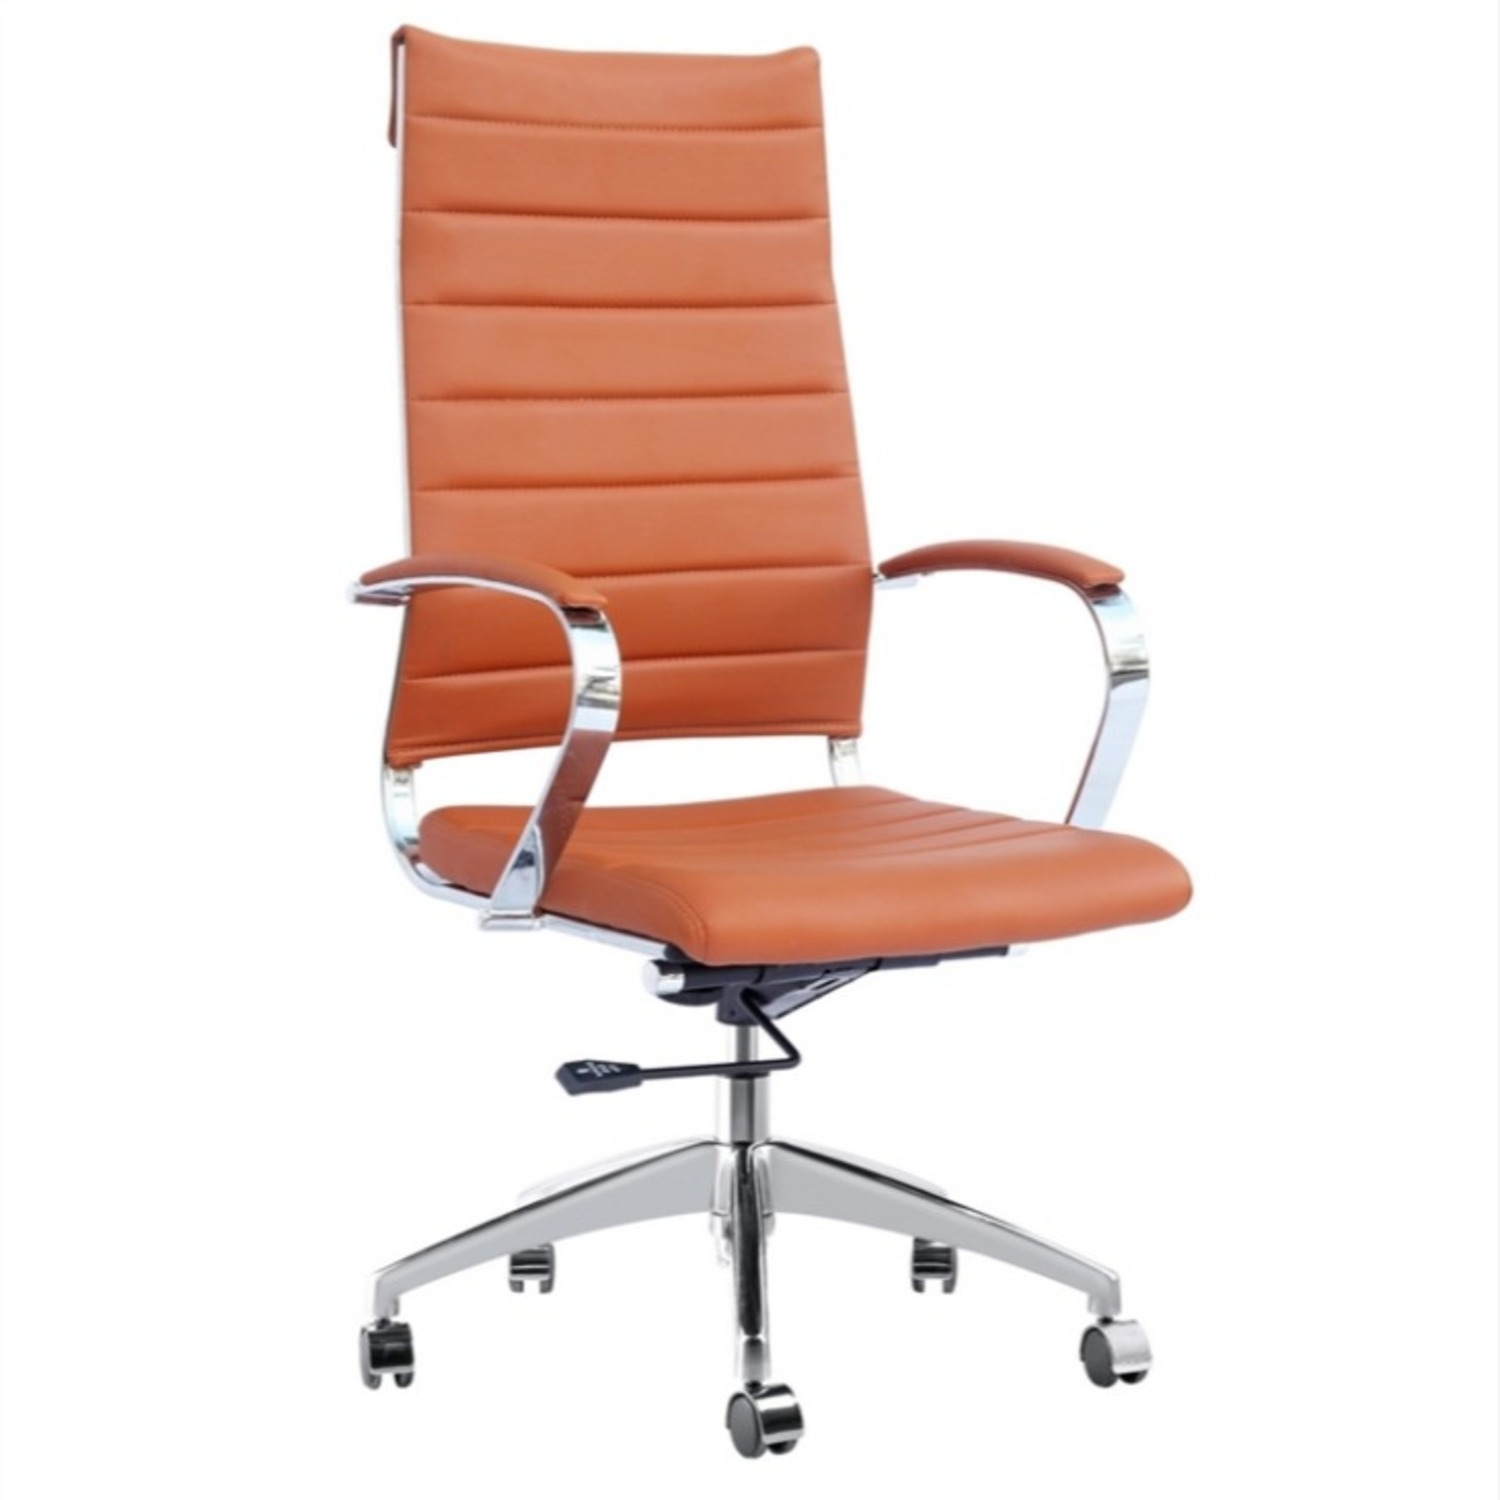 Office Chair W/ High Back Seat In Light Brown - image-0